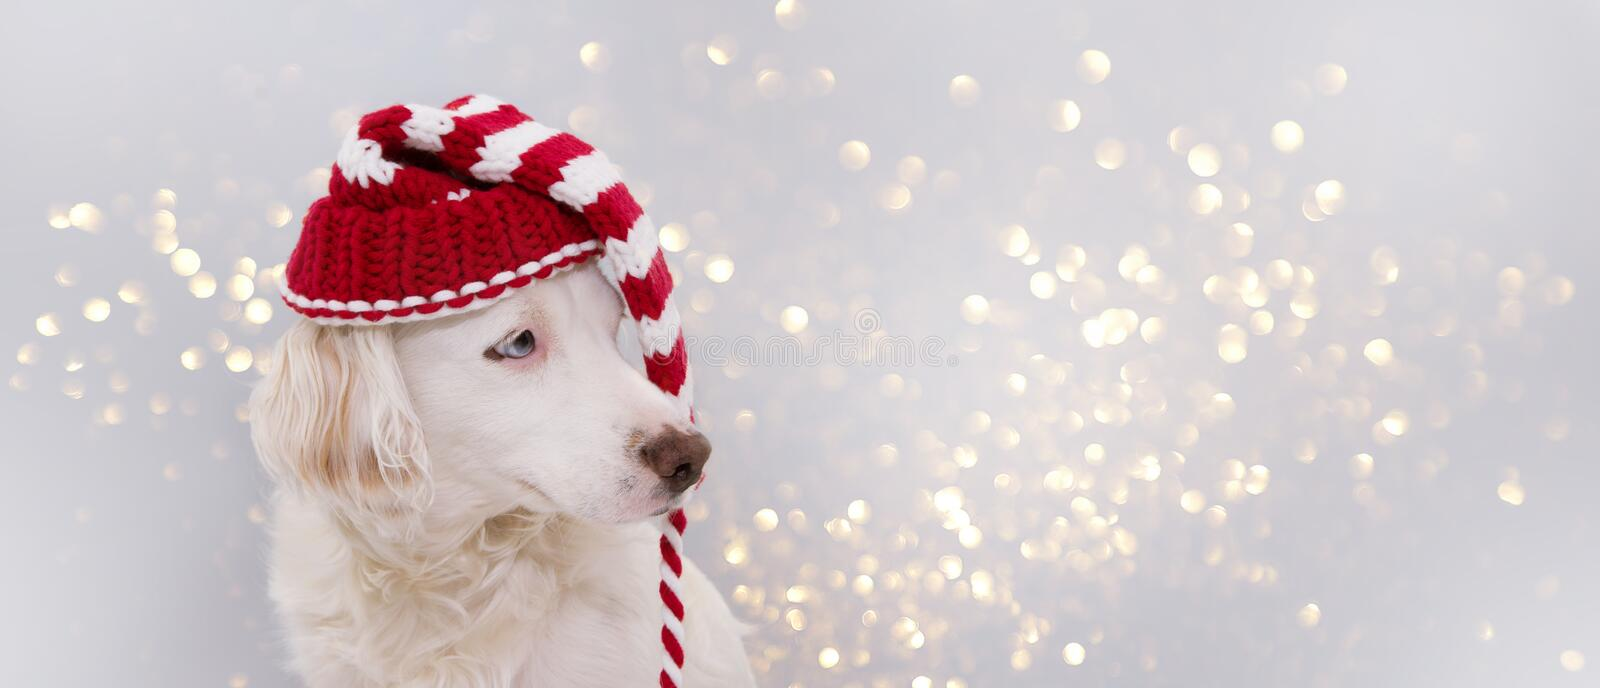 BANNER CHRISTMAS DOG HAT. CUTE PUPPY WEARING A STRIPED RED SANTA CAP  WITH BLUE EYES. ISOLATED AGAINST GRAY BACKGROUND AND royalty free stock photo